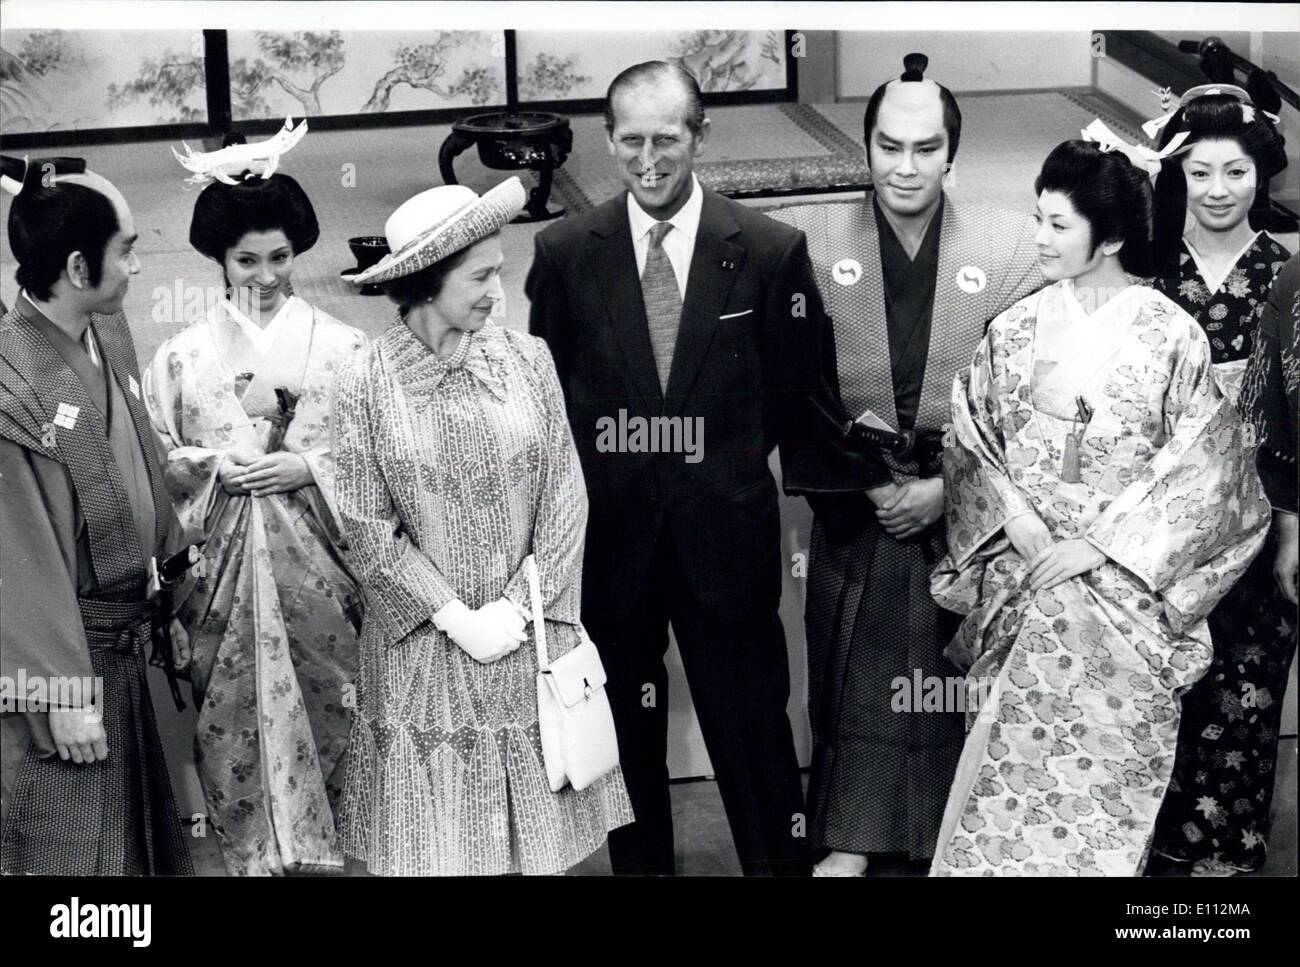 May 08, 1975 - Royal Visit to Japan/ Queen Elizabeth and the Duke of Edinburgh chat with Japanese actors and actresses at NHK TV station in Tokyo where an old Japanese drama was being filmed - Stock Image